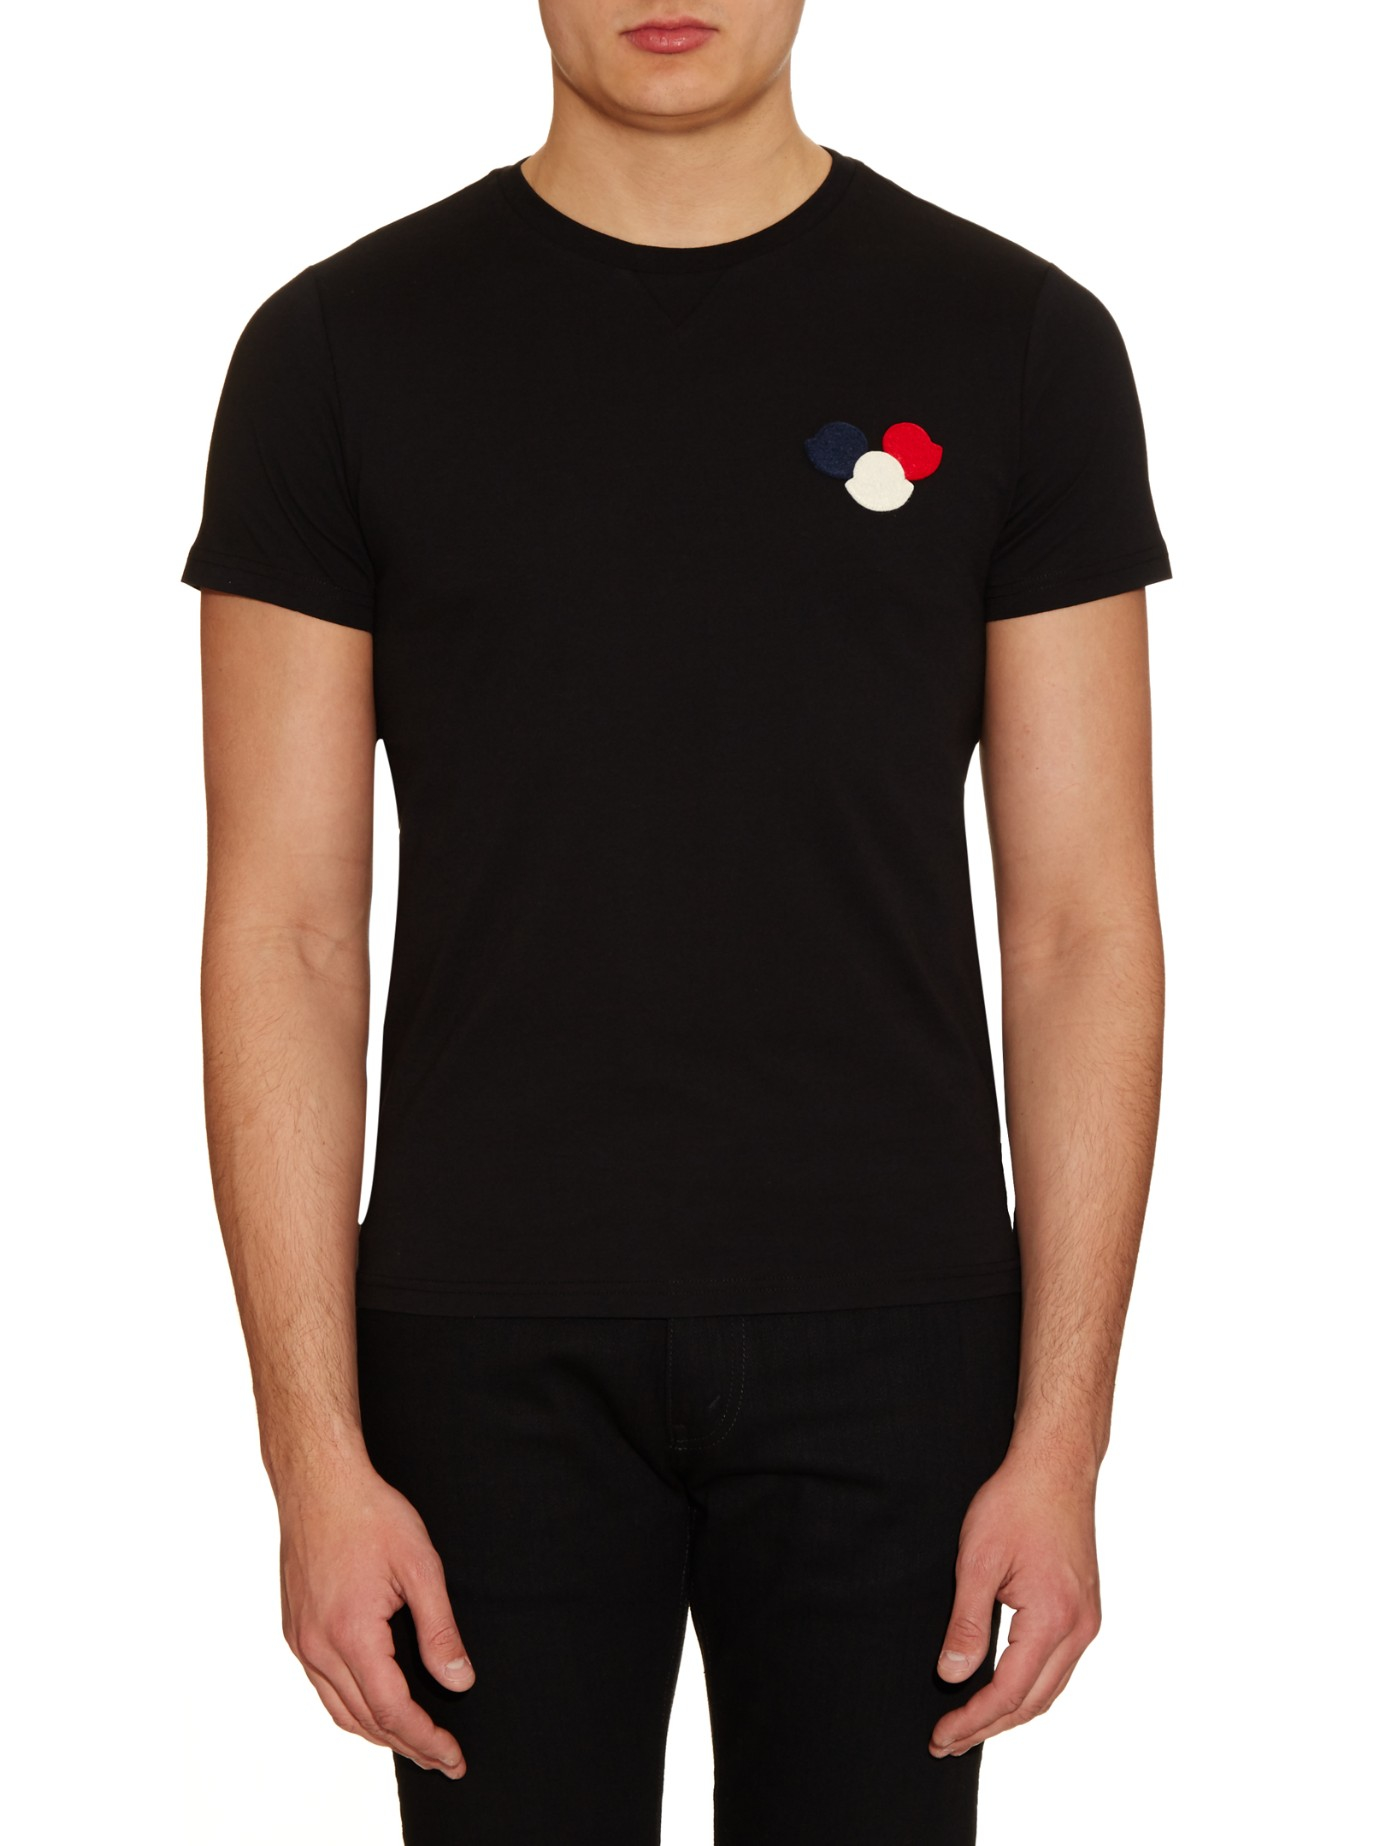 lyst moncler logo appliqu cotton t shirt in black for men. Black Bedroom Furniture Sets. Home Design Ideas